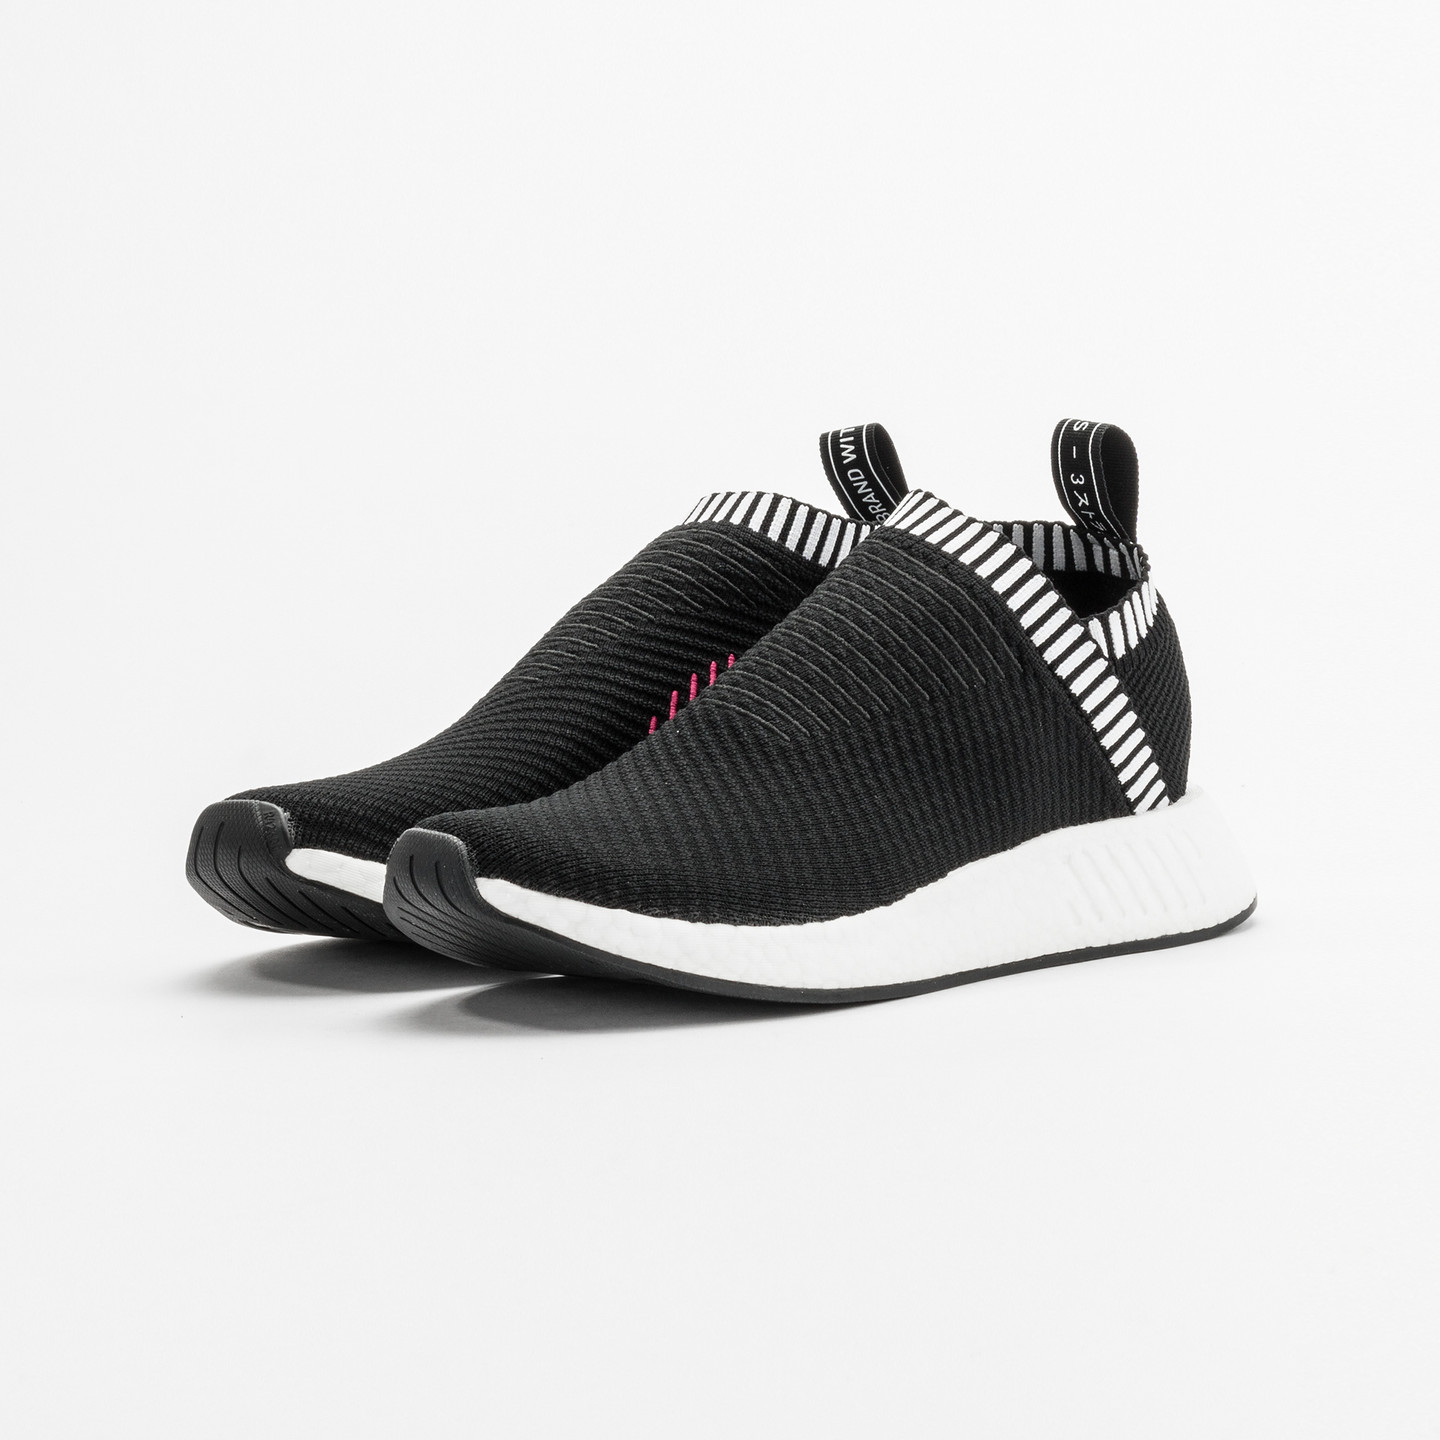 Adidas NMD CS2 PK Core Black / Pink BA7188